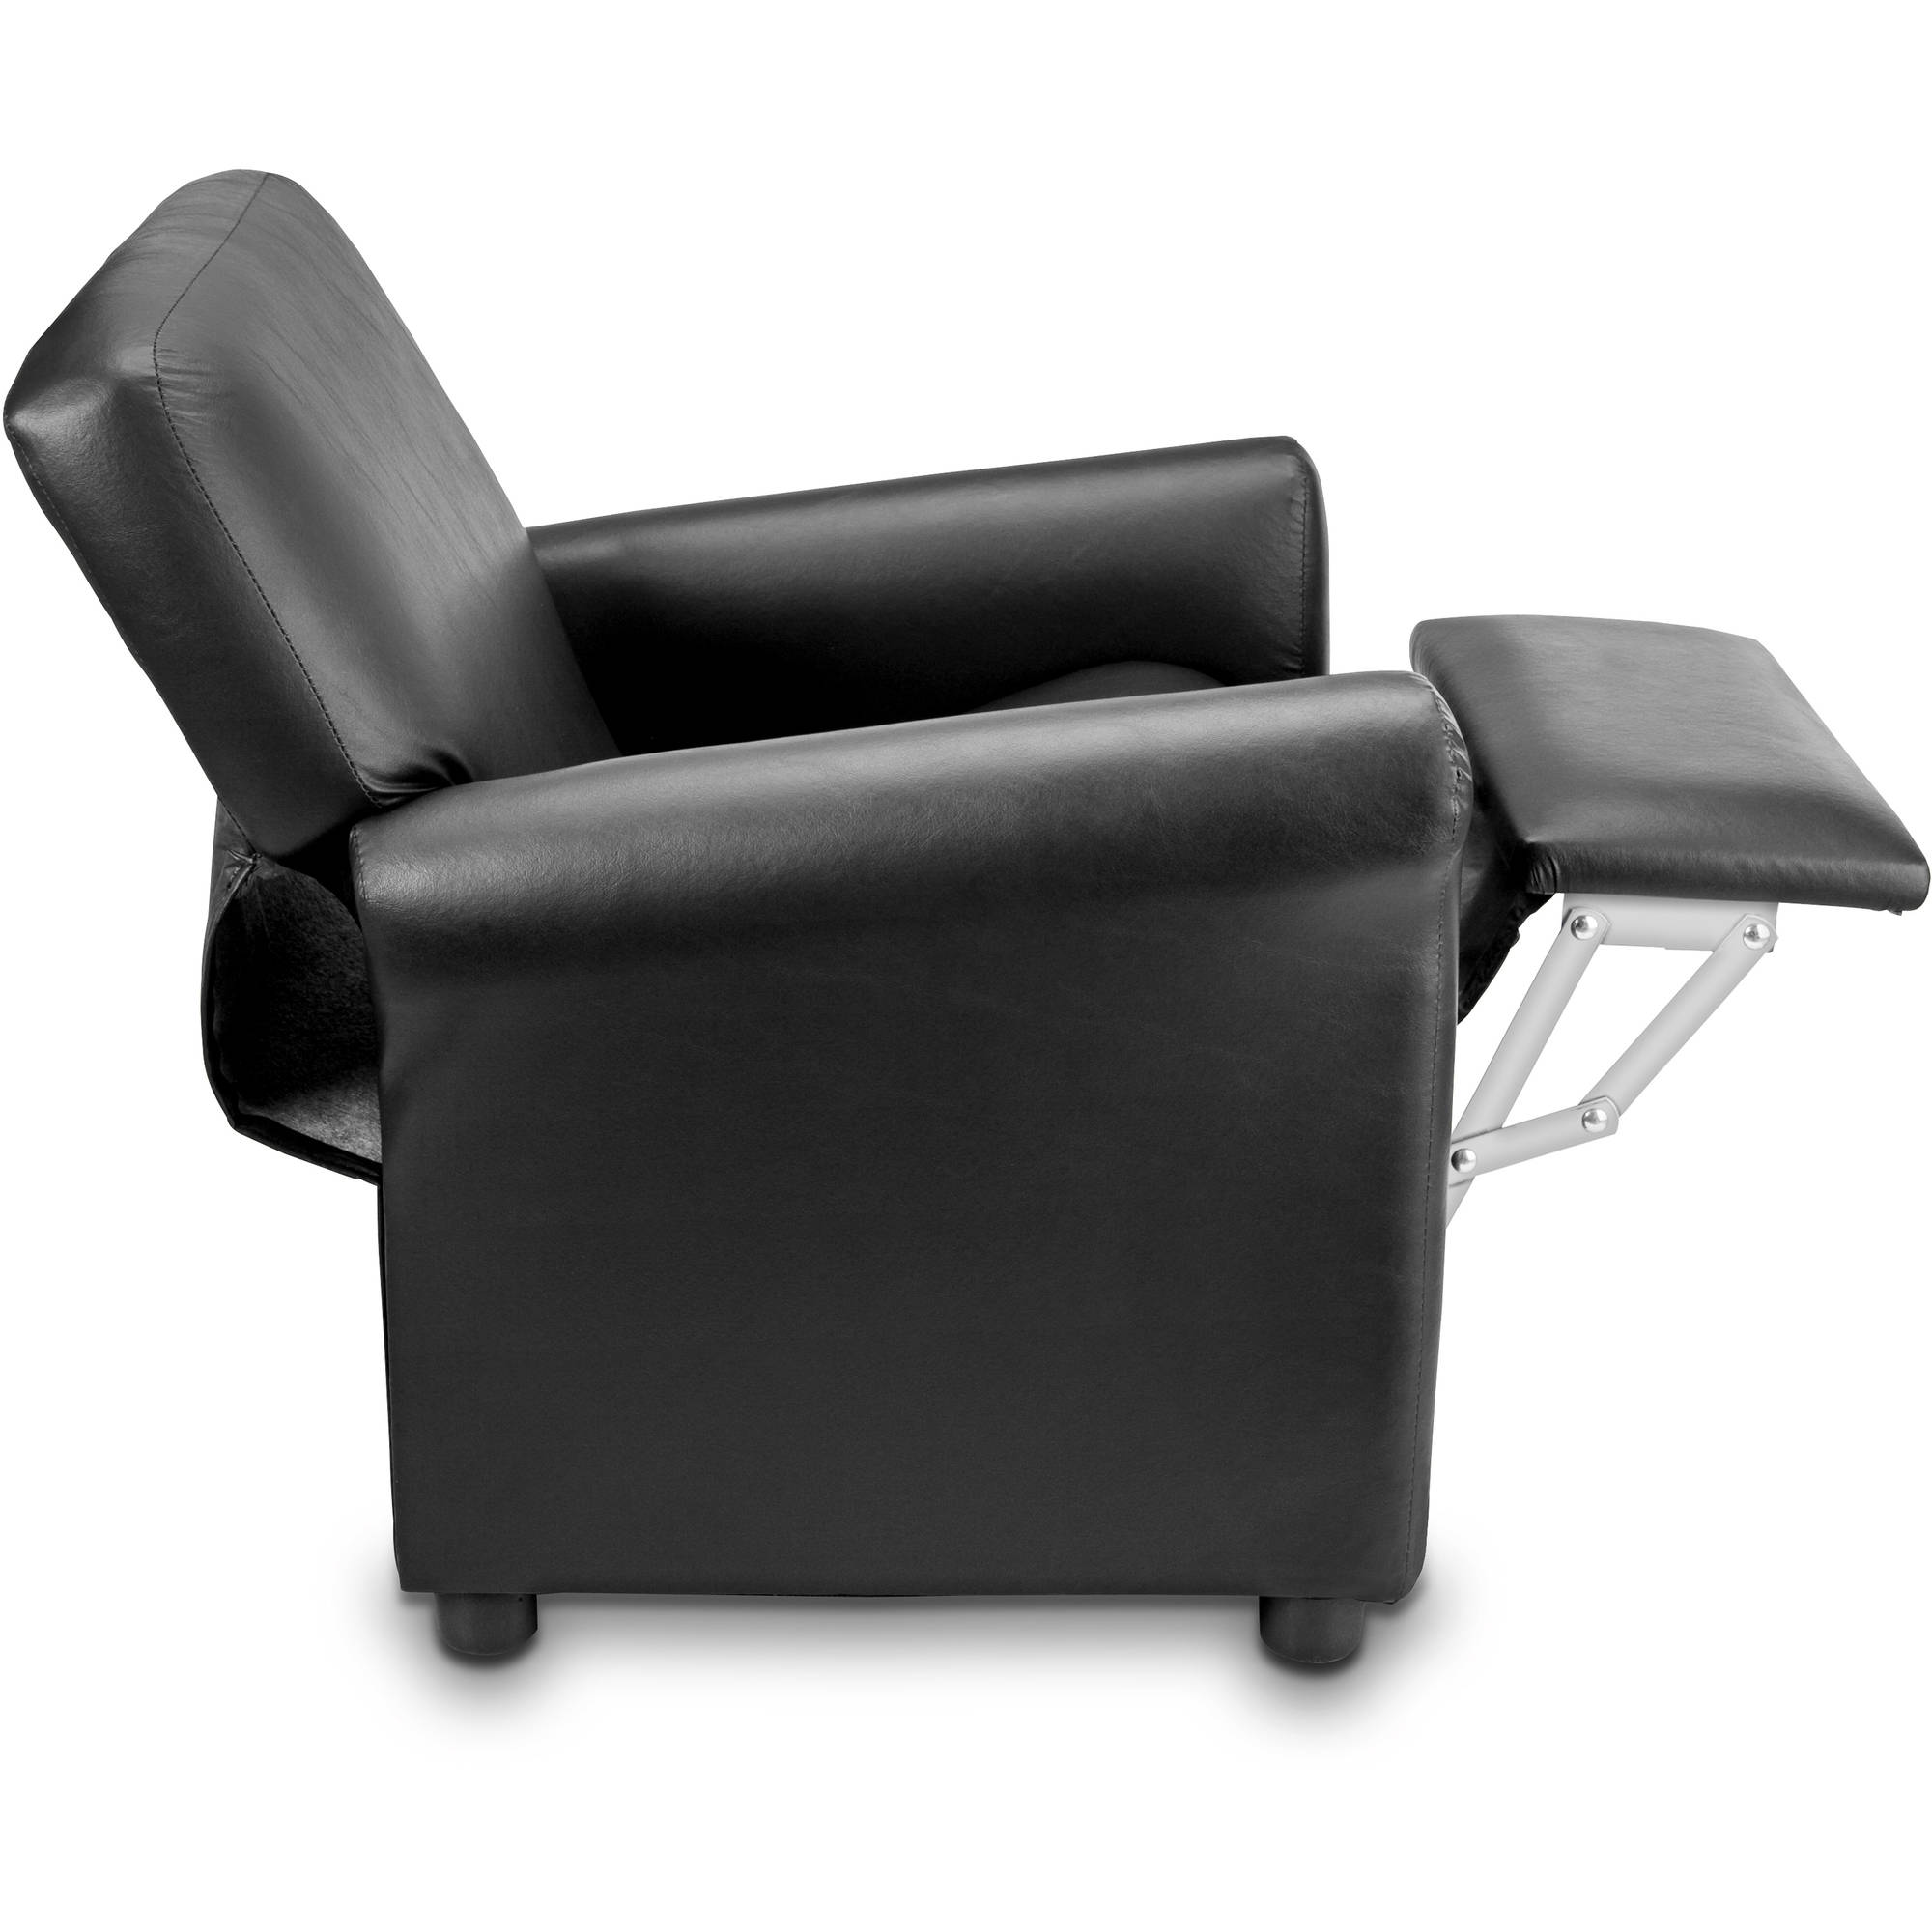 Crew Furniture Urban Child Recliner Available in Multiple Colors